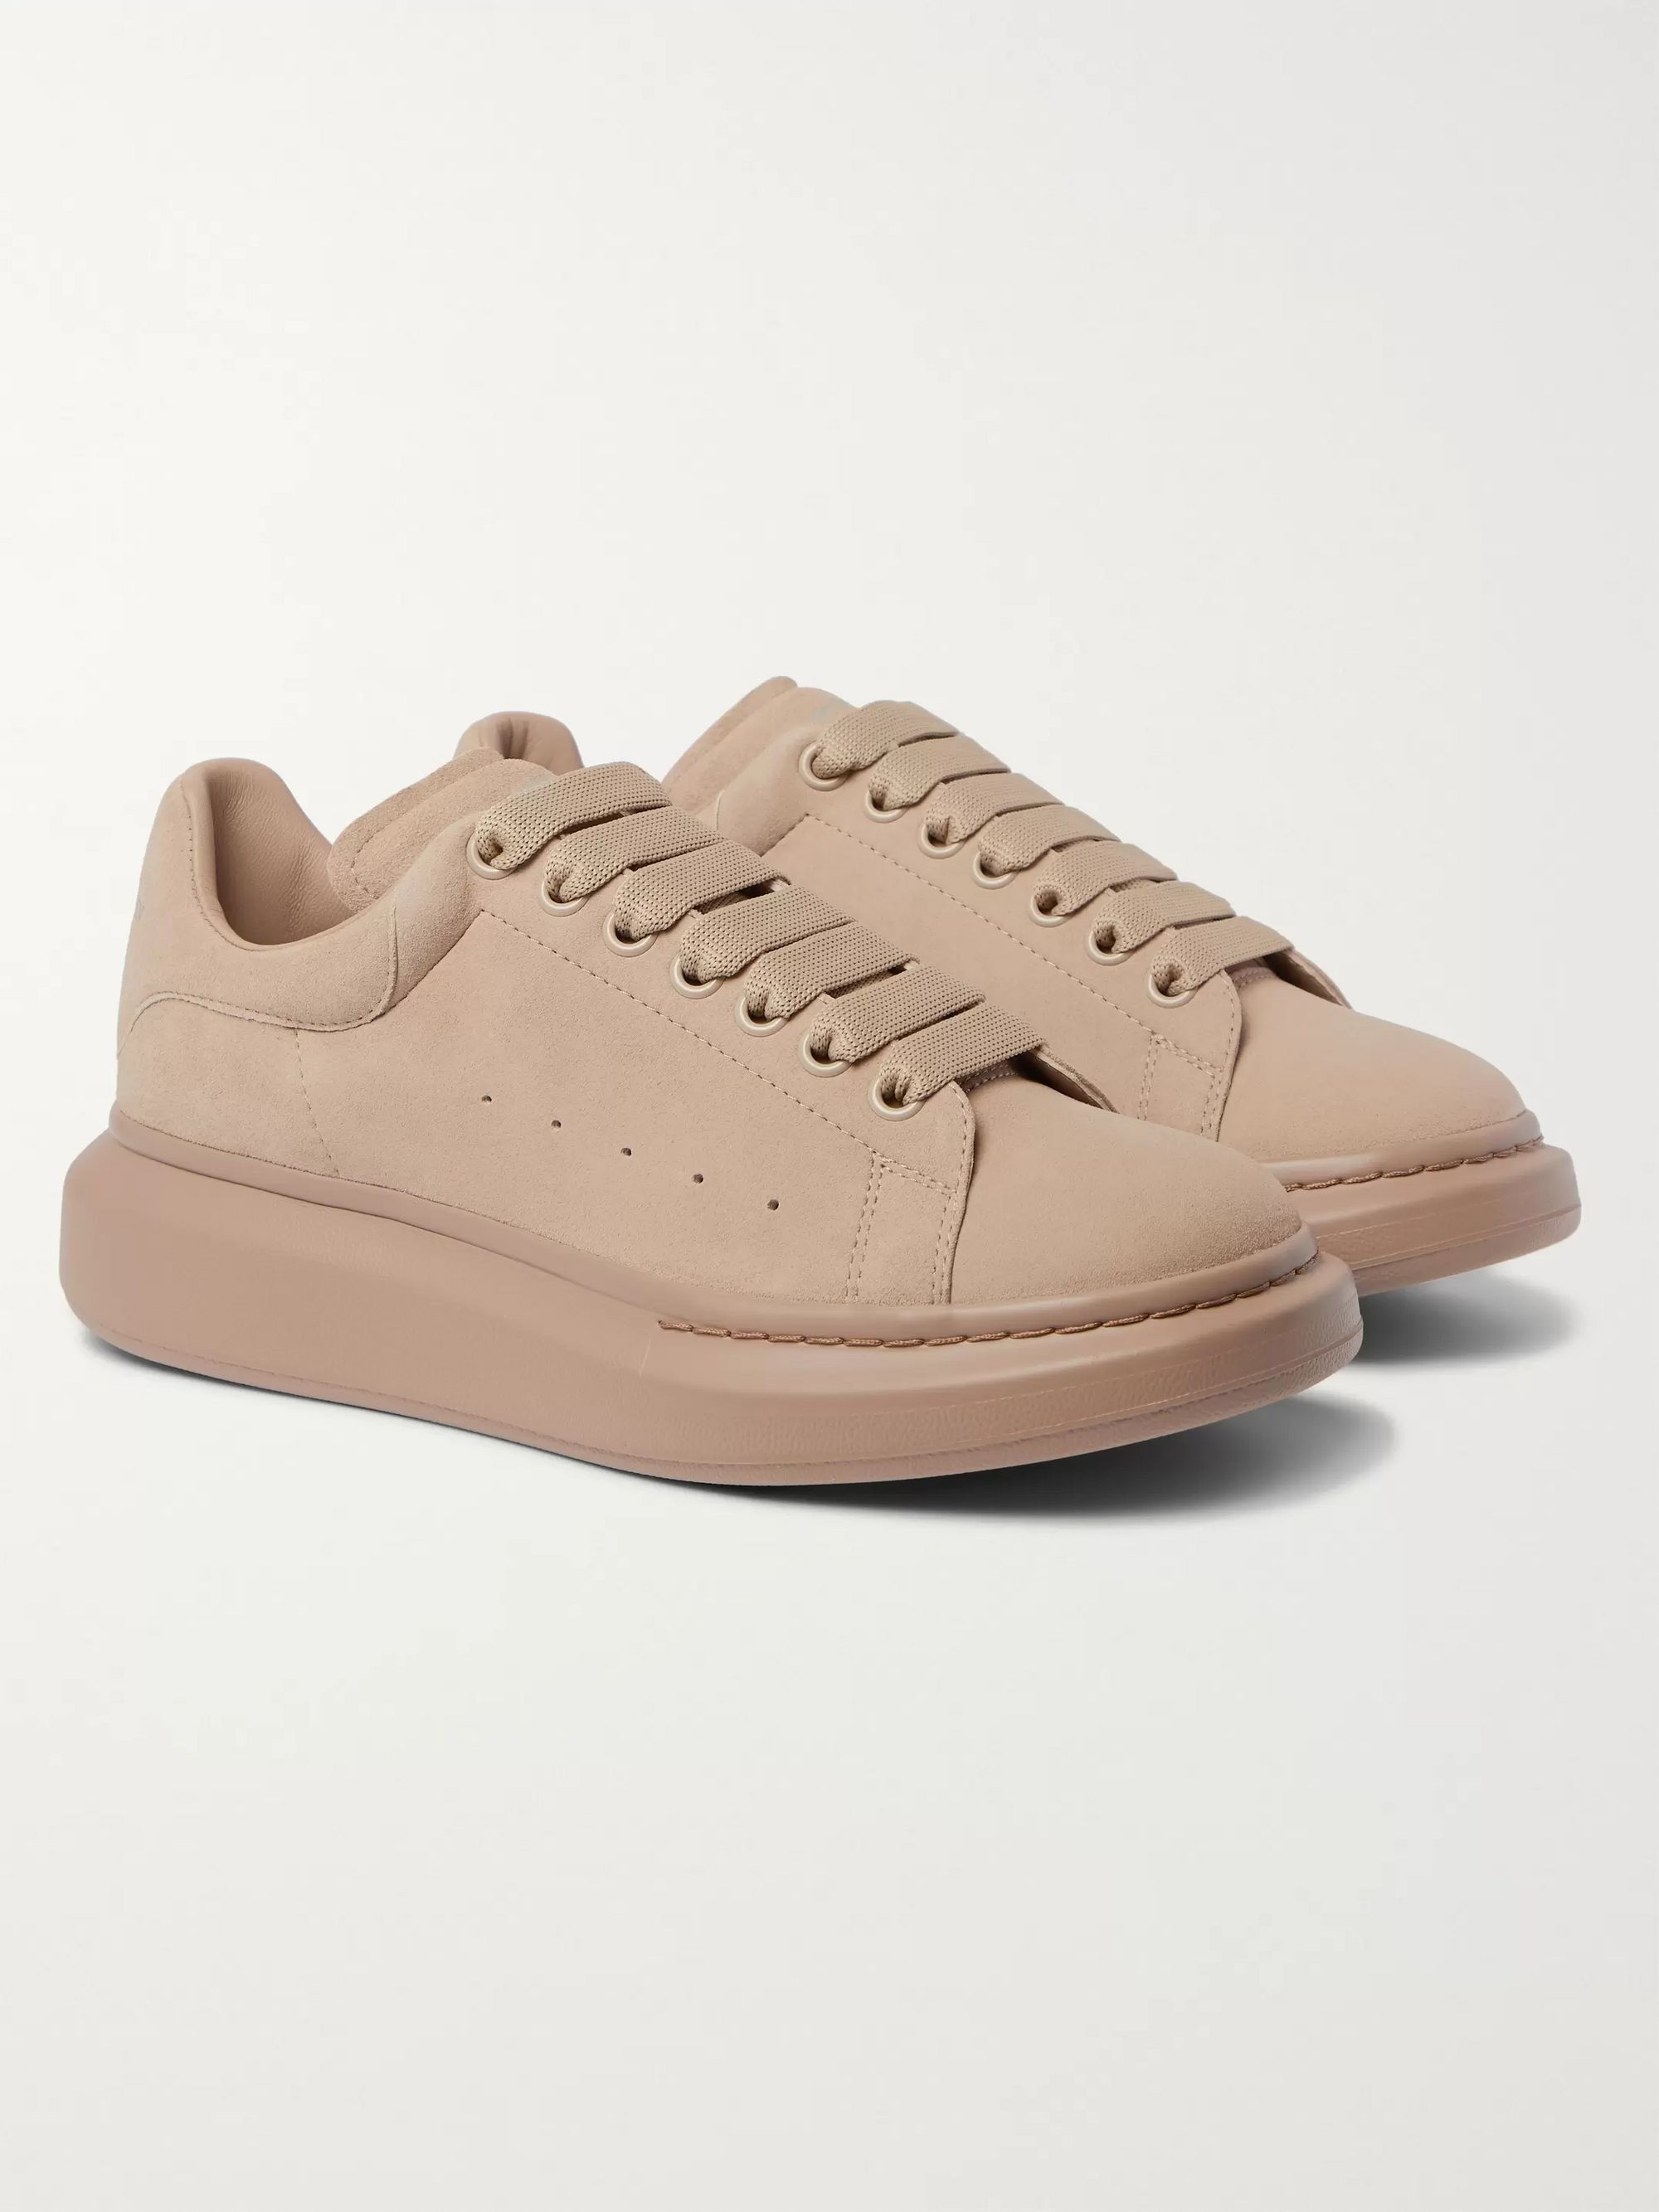 Neutral Exaggerated-Sole Suede Sneakers | Alexander McQueen | MR PORTER